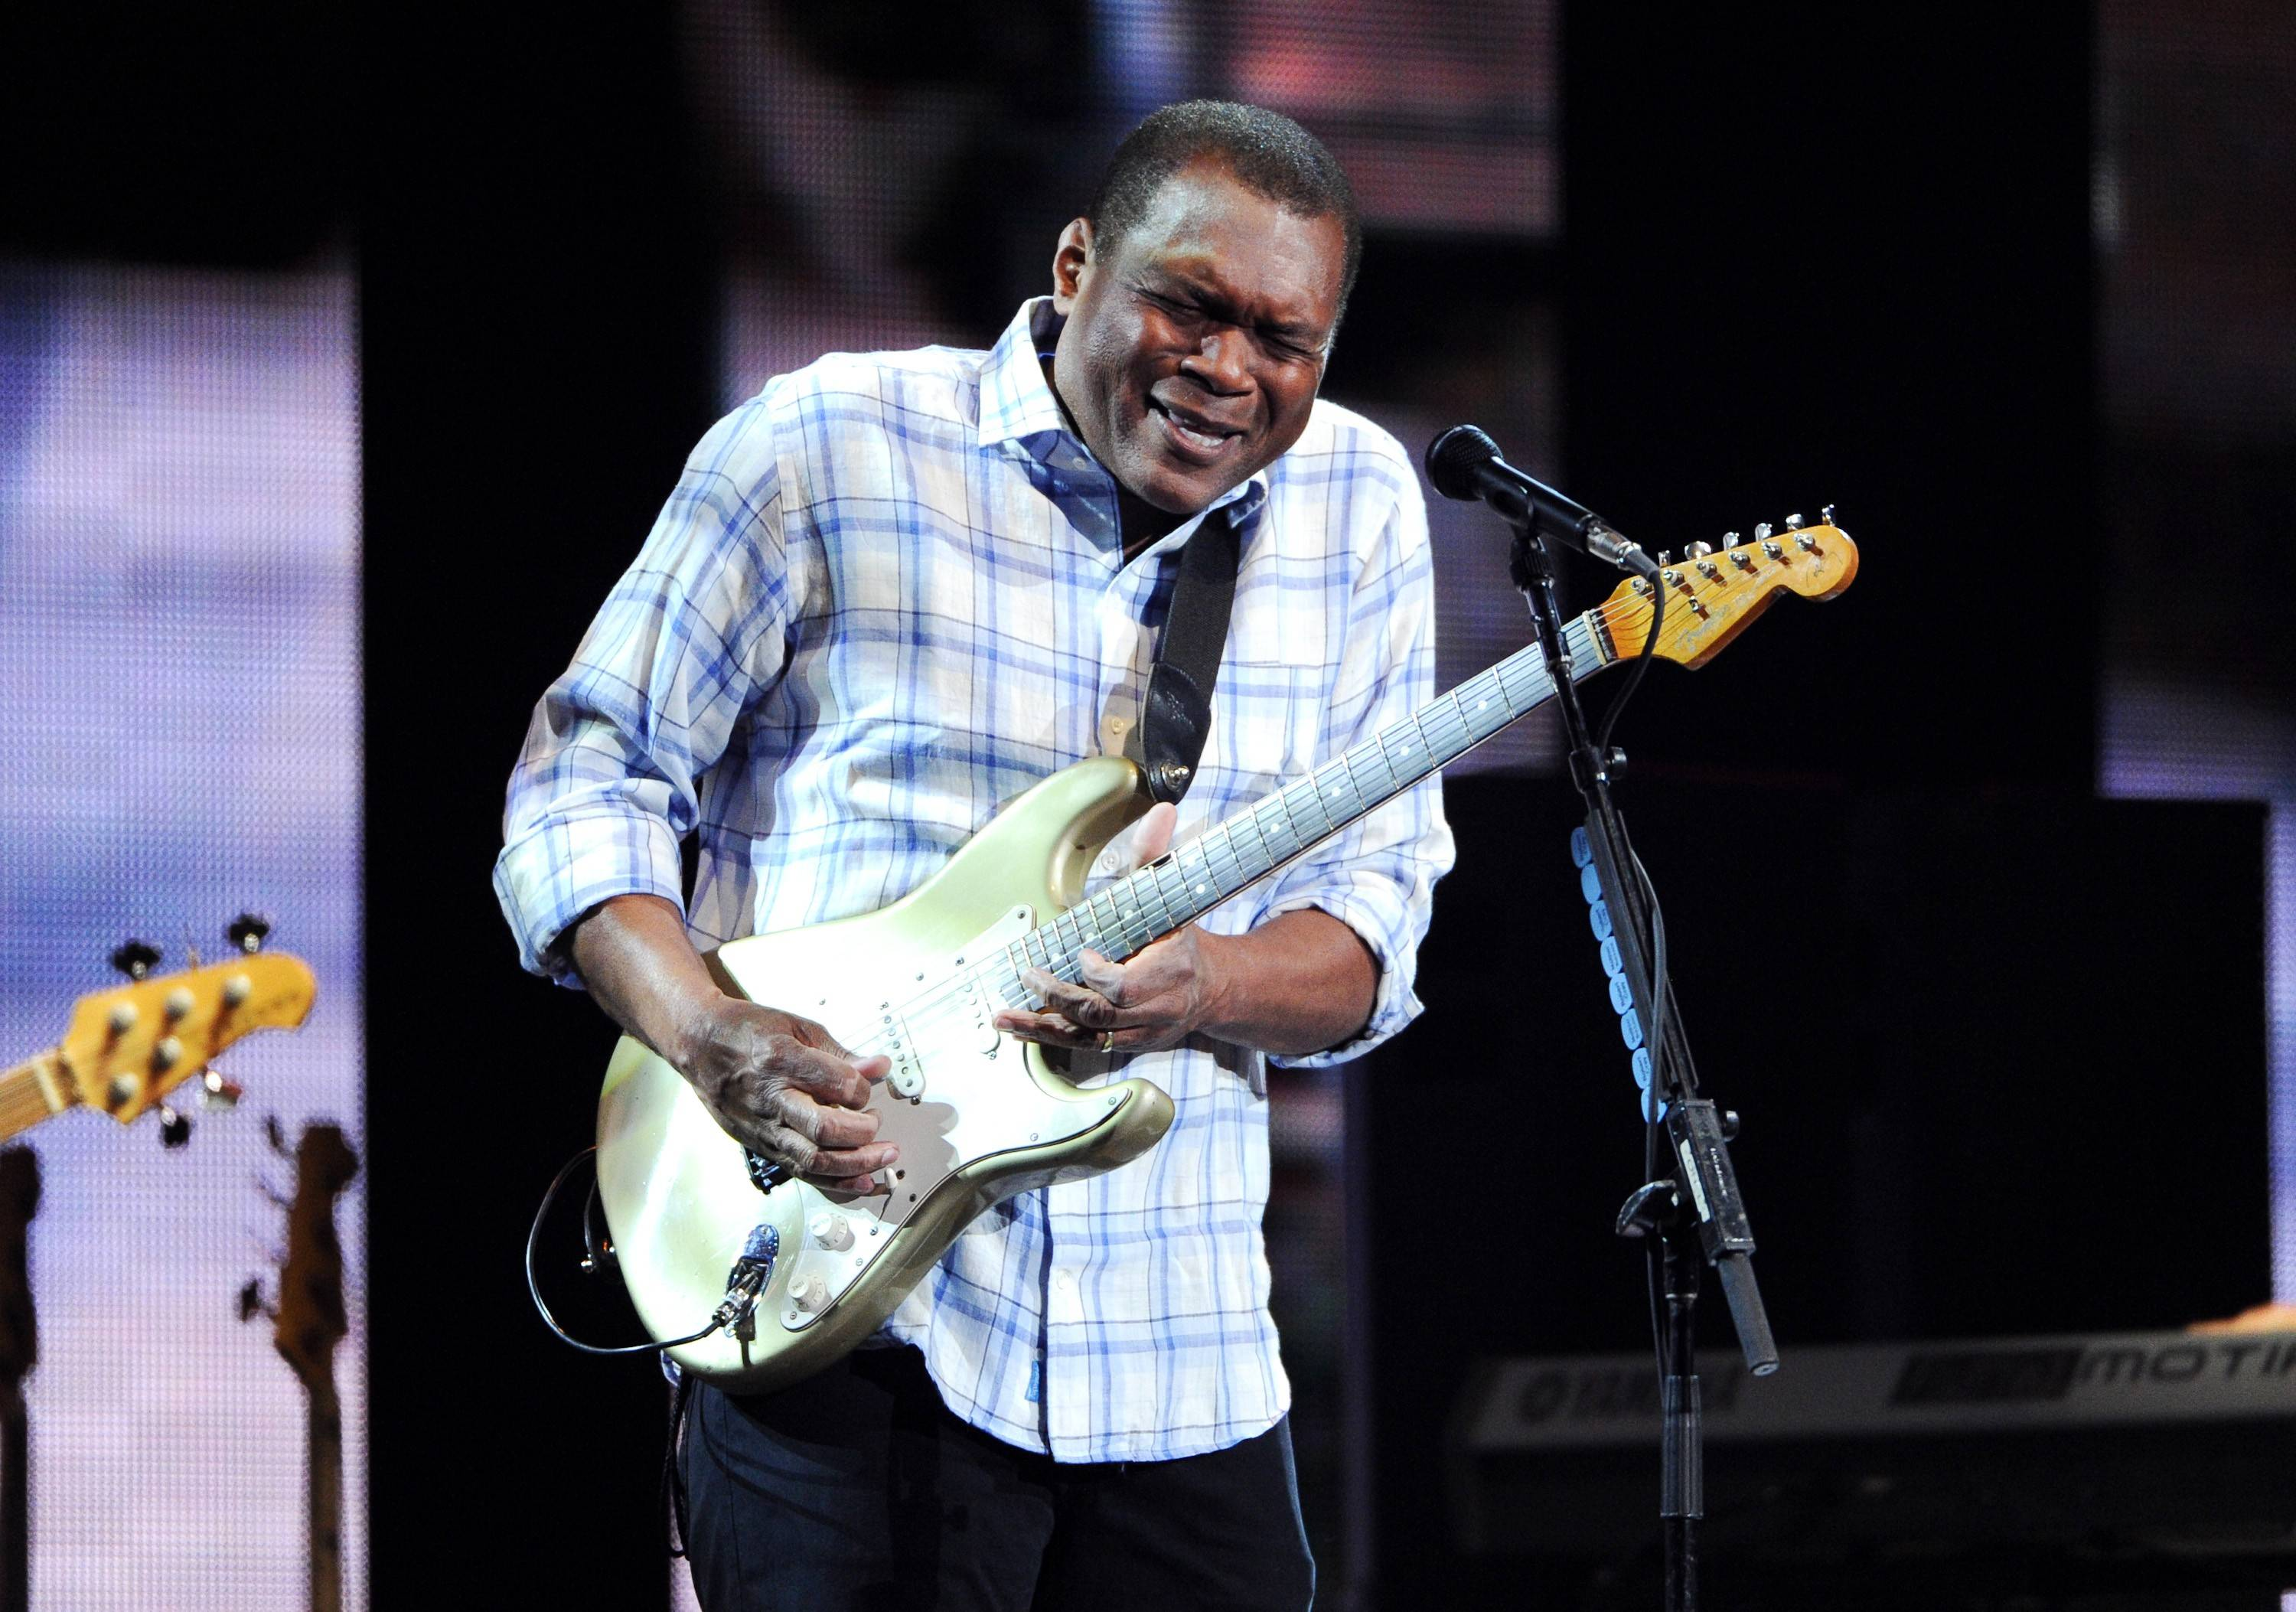 Guitarist Robert Cray brings his Robert Cray Band to perform in October at North Central College in Naperville.